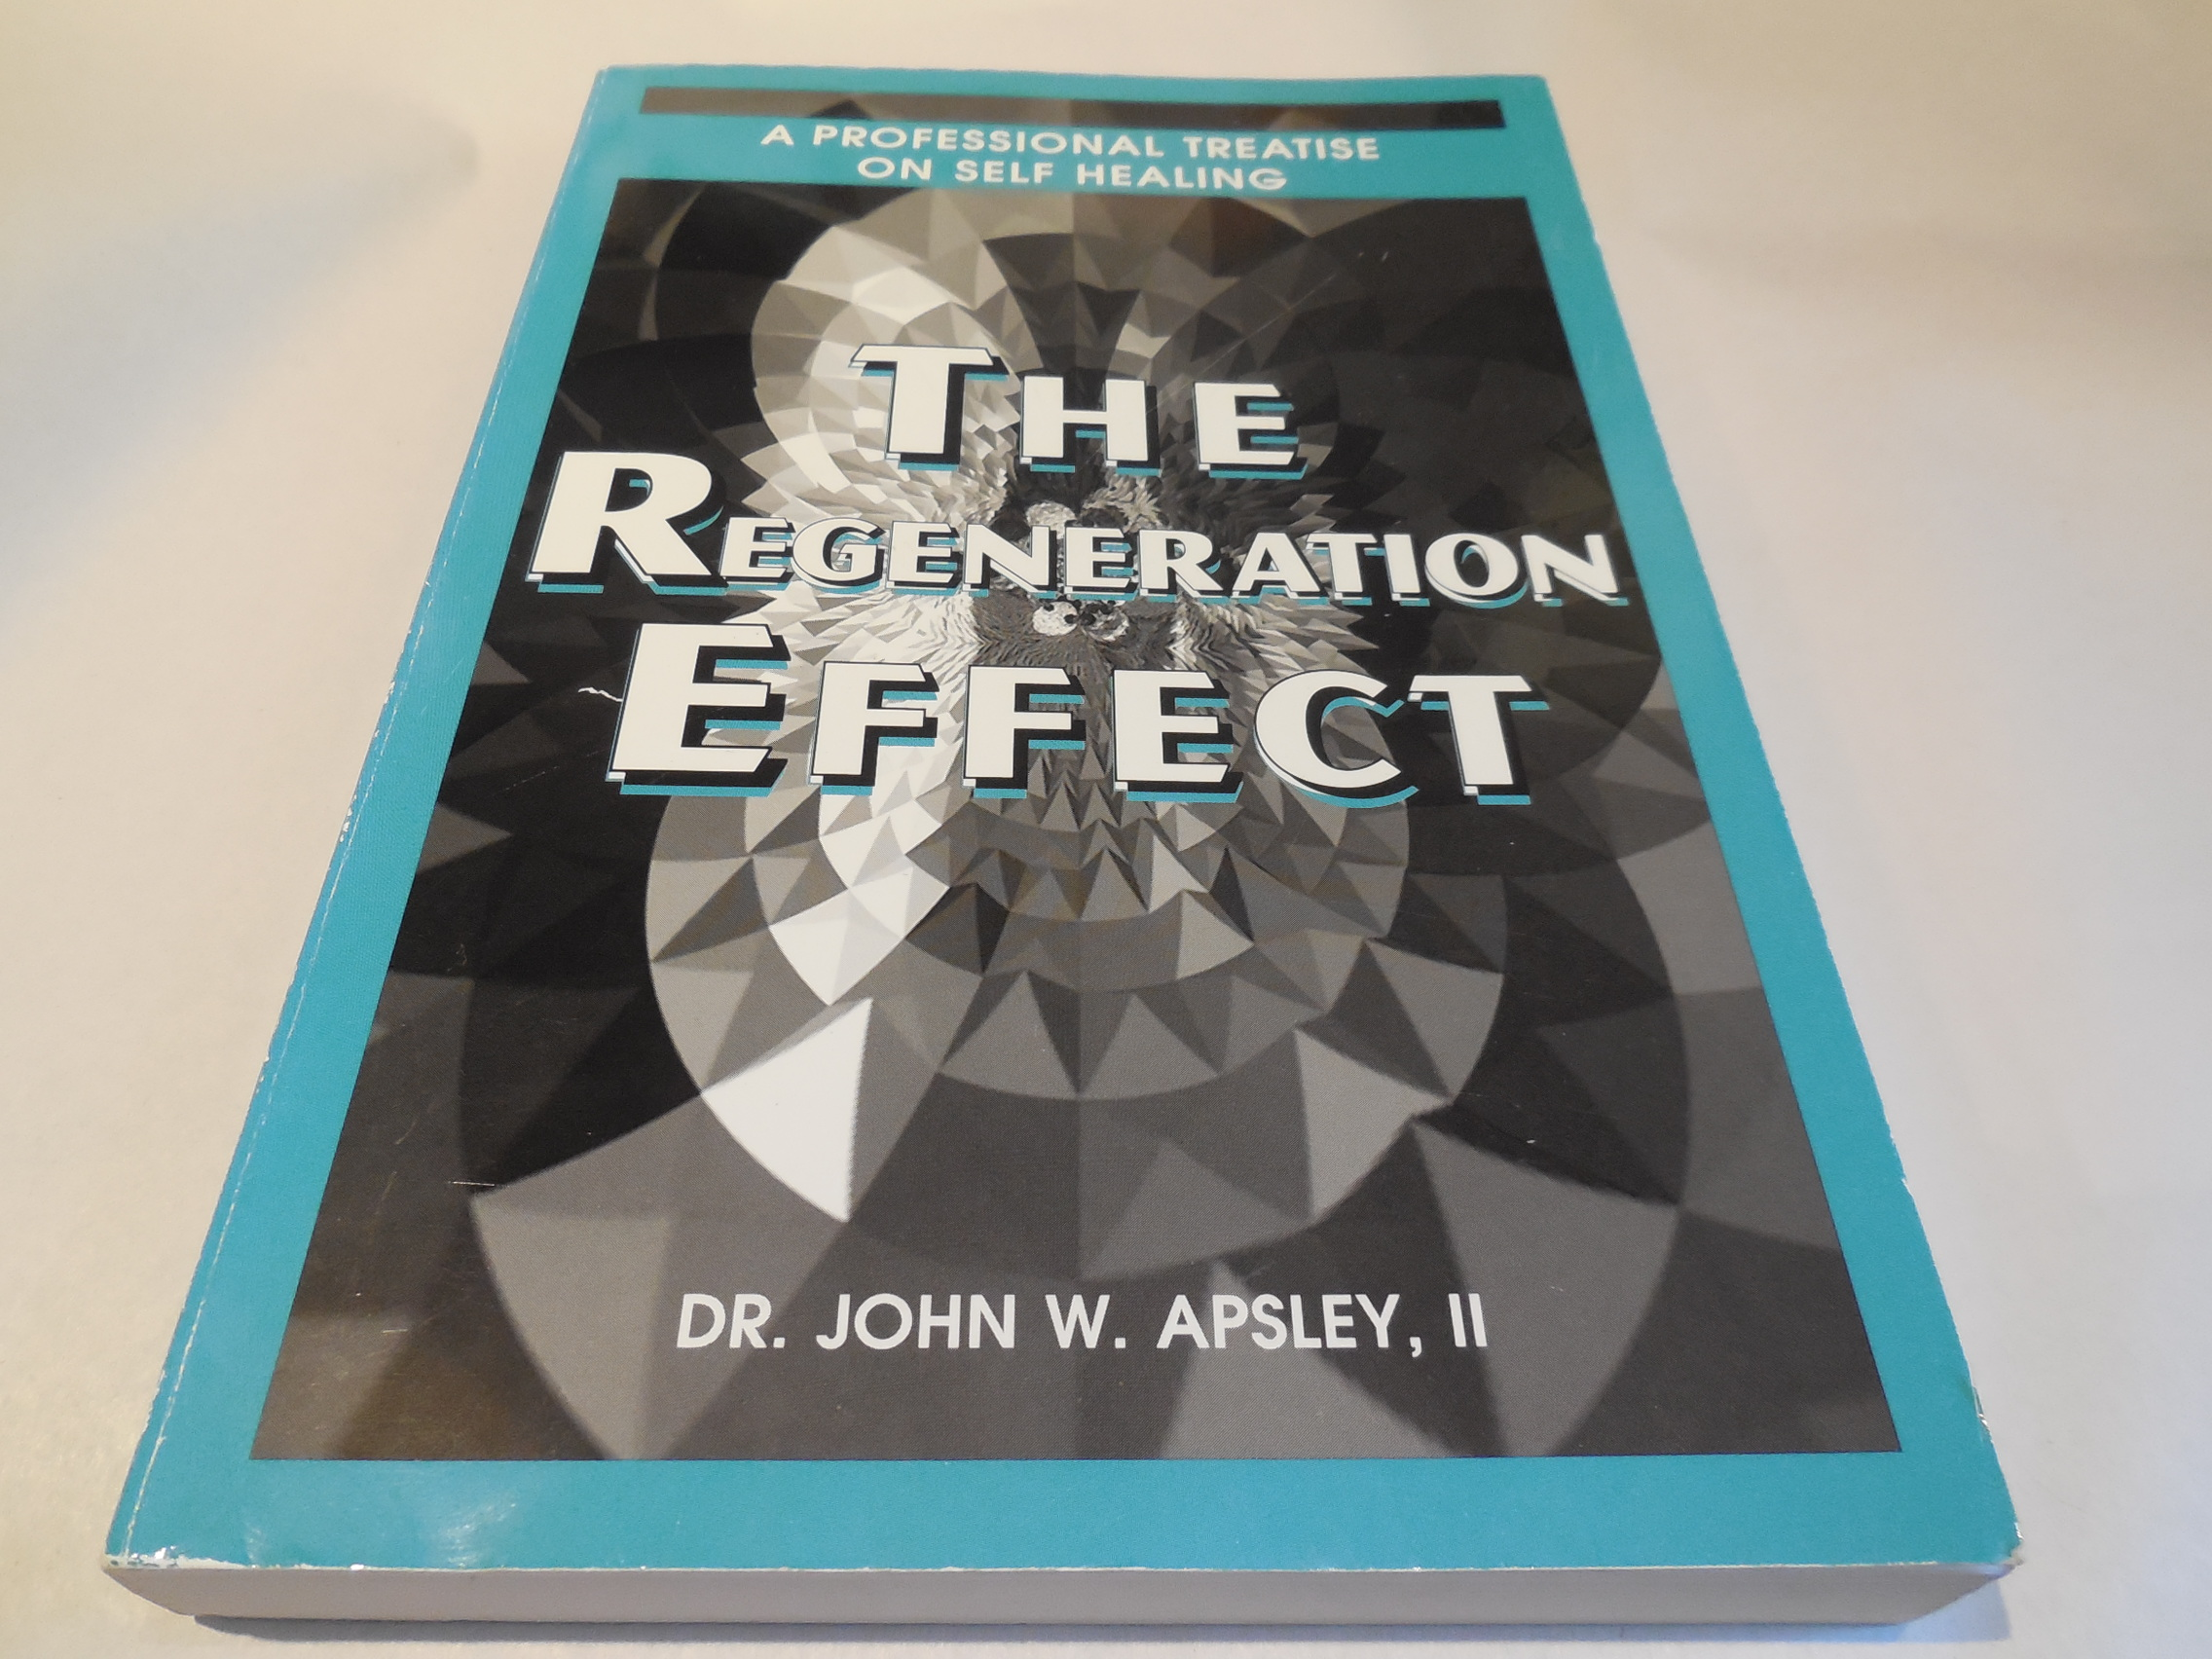 Image for The Regeneration Effect:  A Professional Treatise on Self Healing